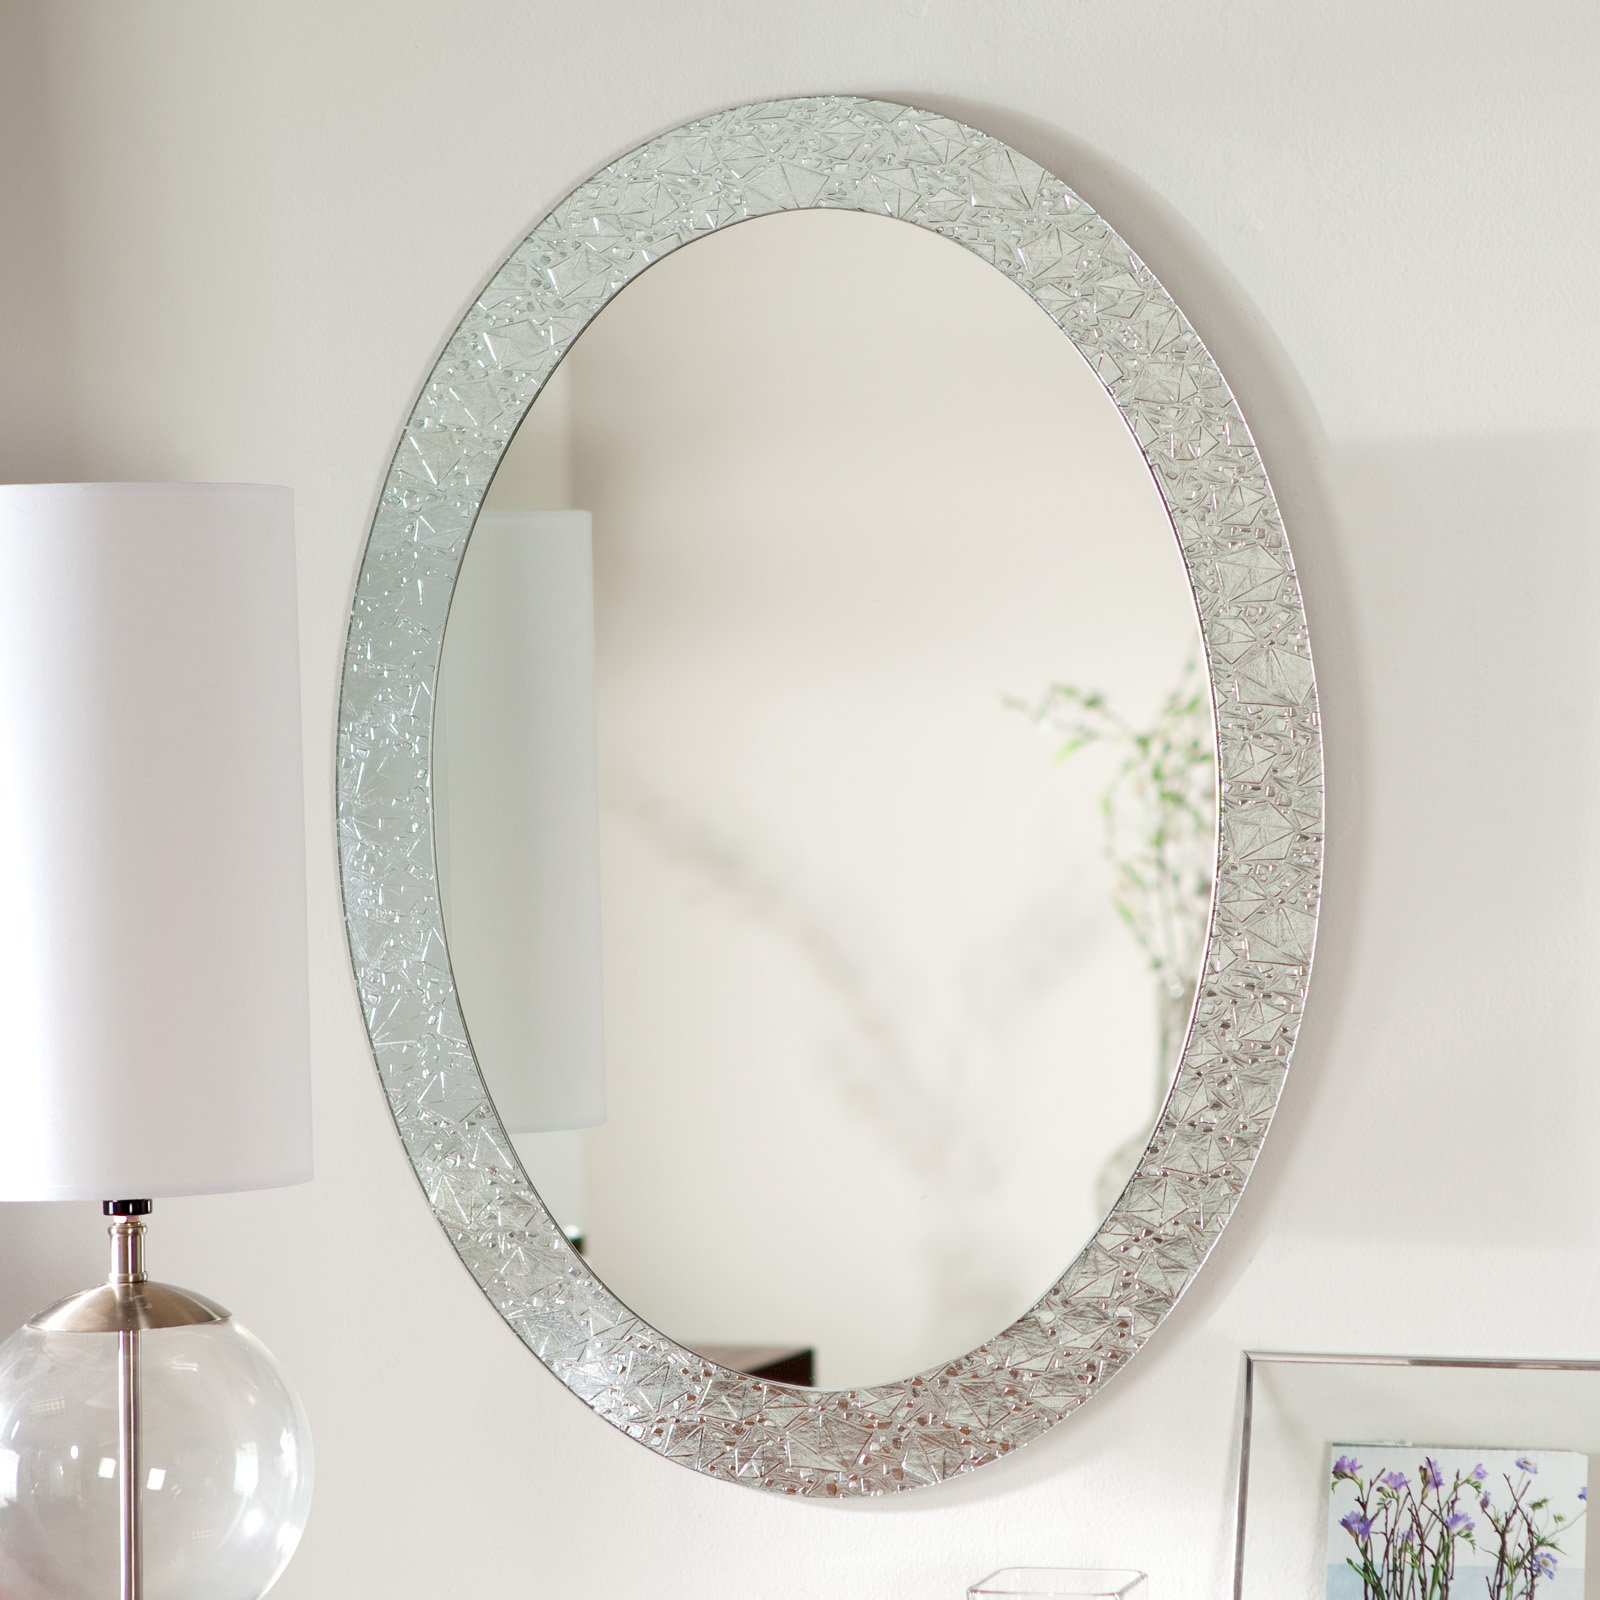 Sheffield Home Mirrors Simplest Way to Give Lux and  : beautiful mirror ornament in oval design pure white table lamp with glass ball body white frame flower picture from homesfeed.com size 1600 x 1600 jpeg 256kB